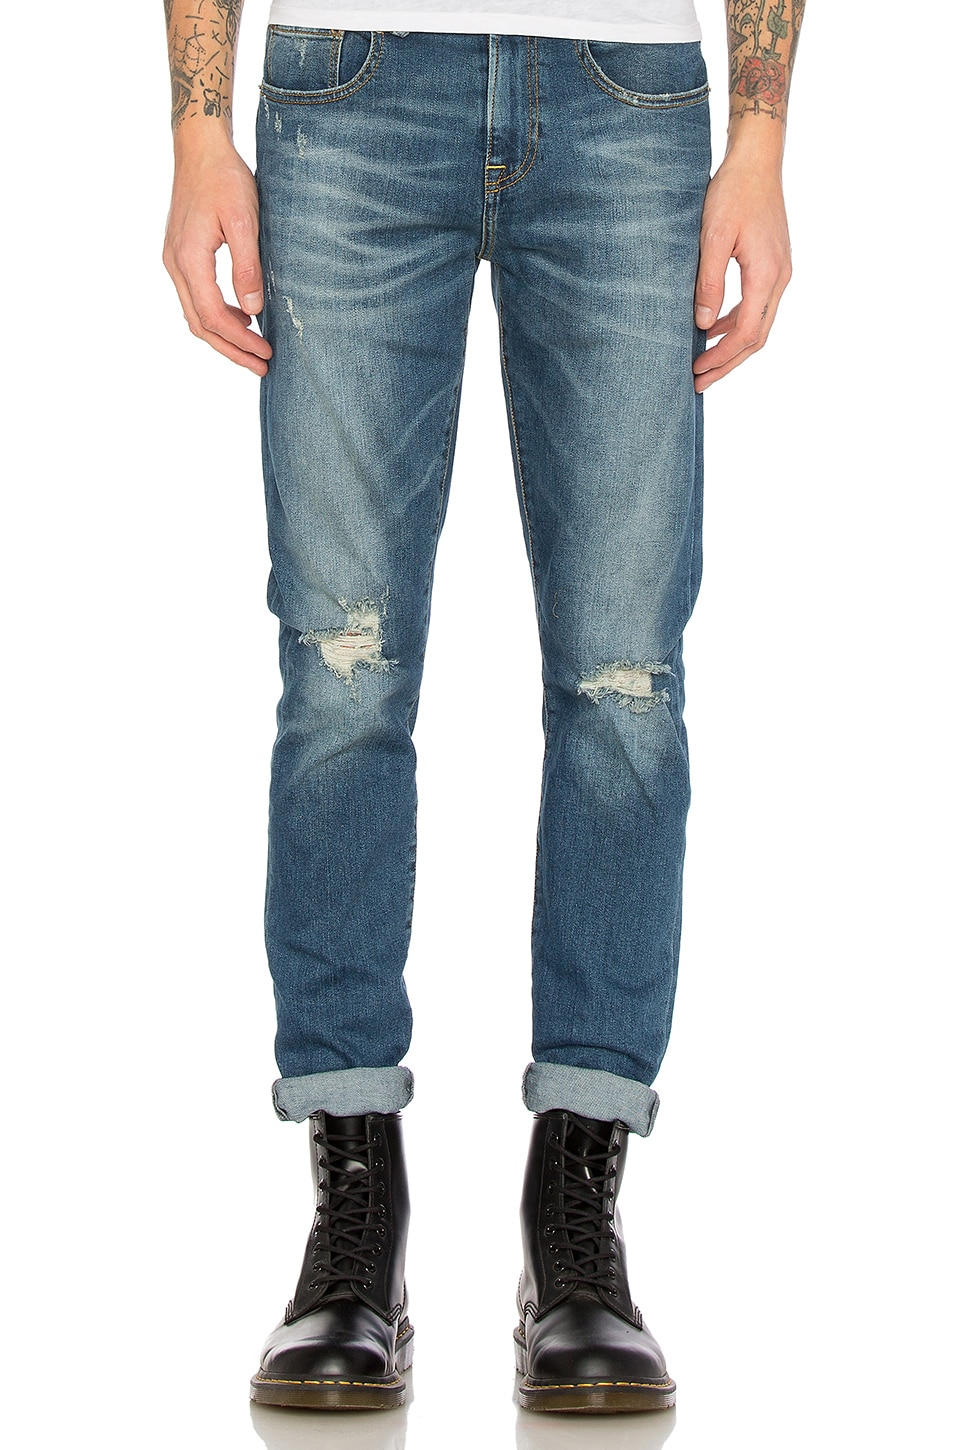 Photo of Boy Jean by R13 men clothes